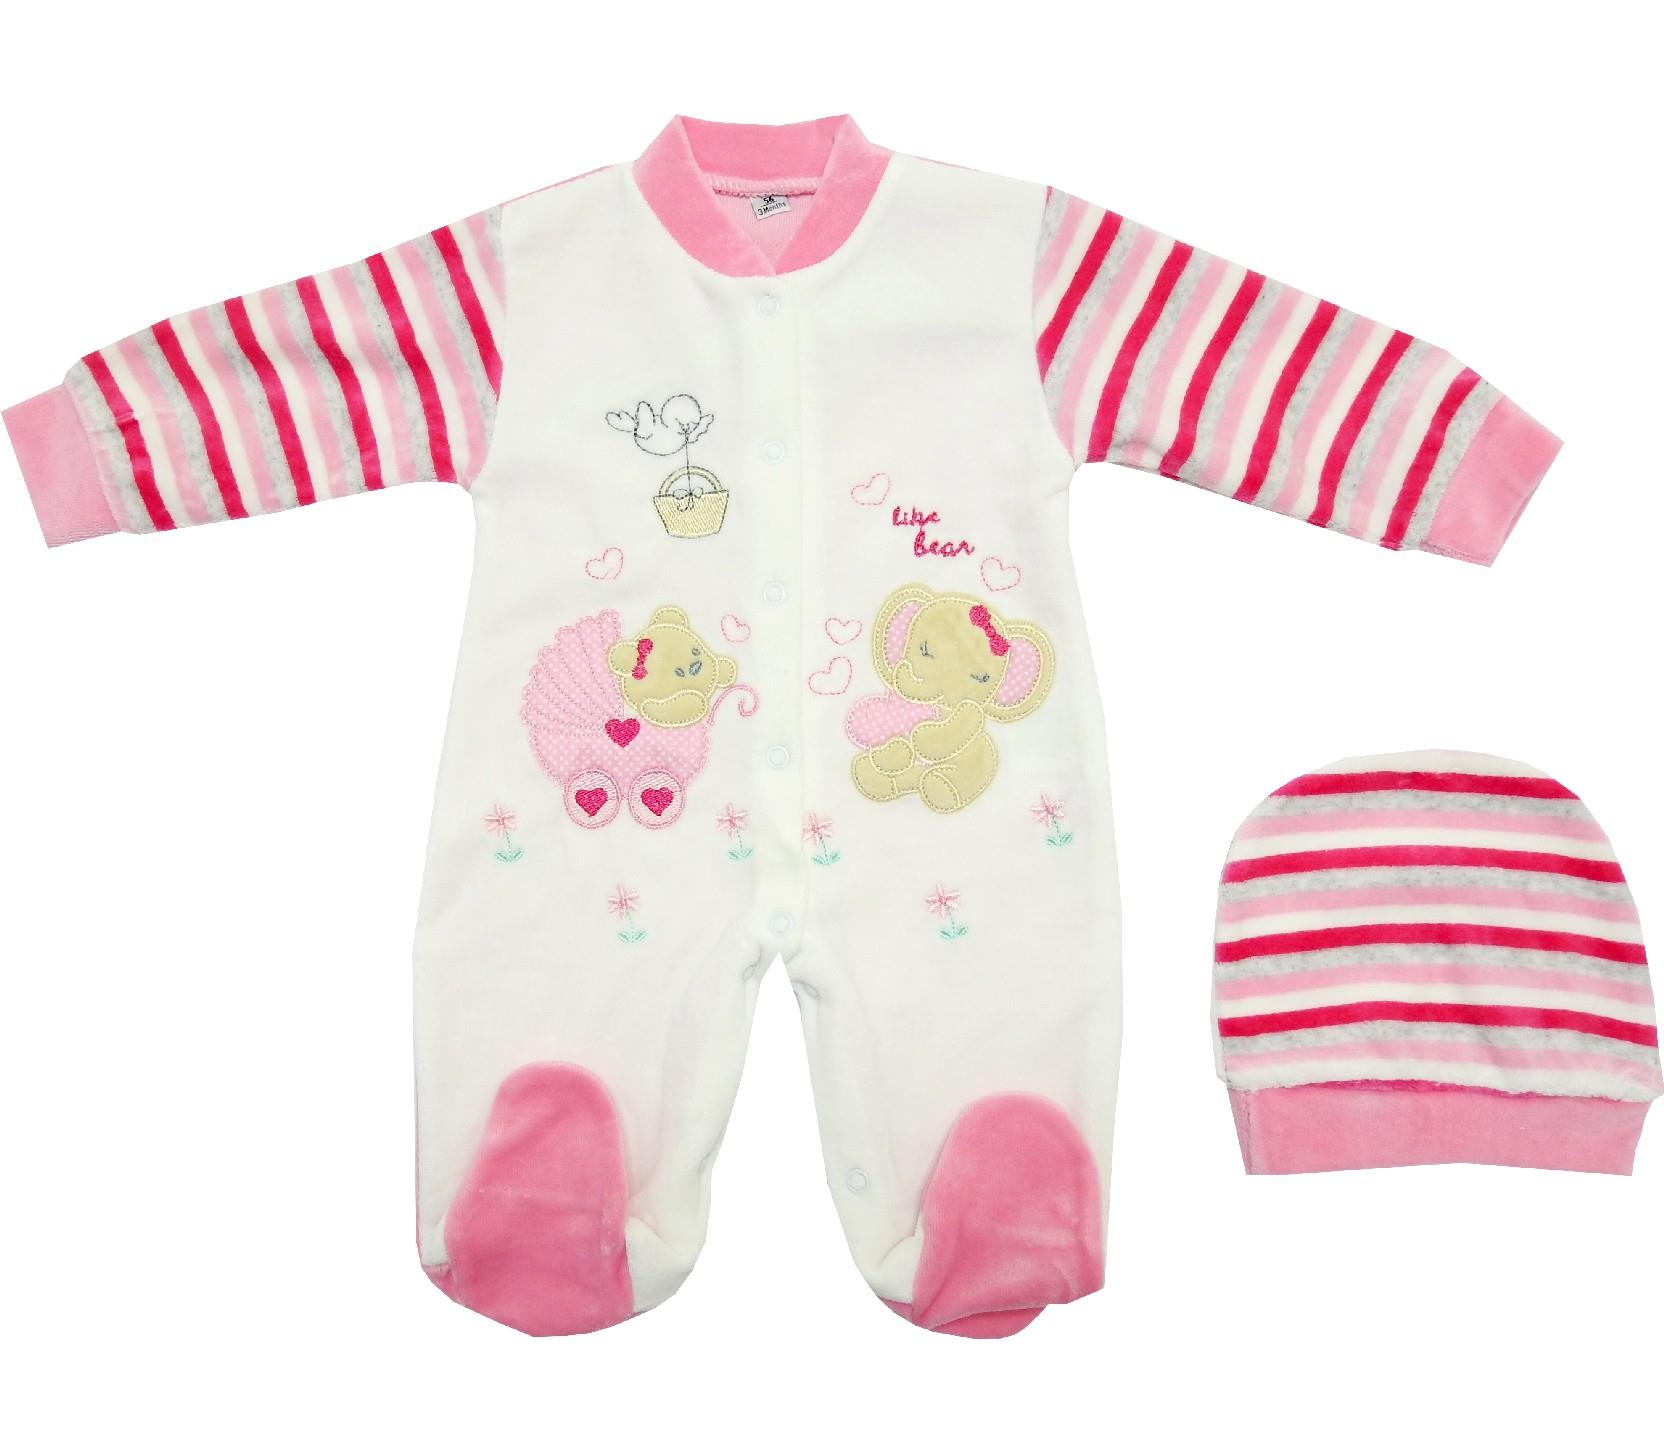 ELEPHANT AND BEAR PRINTED STRIPED DESIGN BODYSUIT & BEANIE DOUBLE SET FOR GIRL (3-6-9 MONTH)